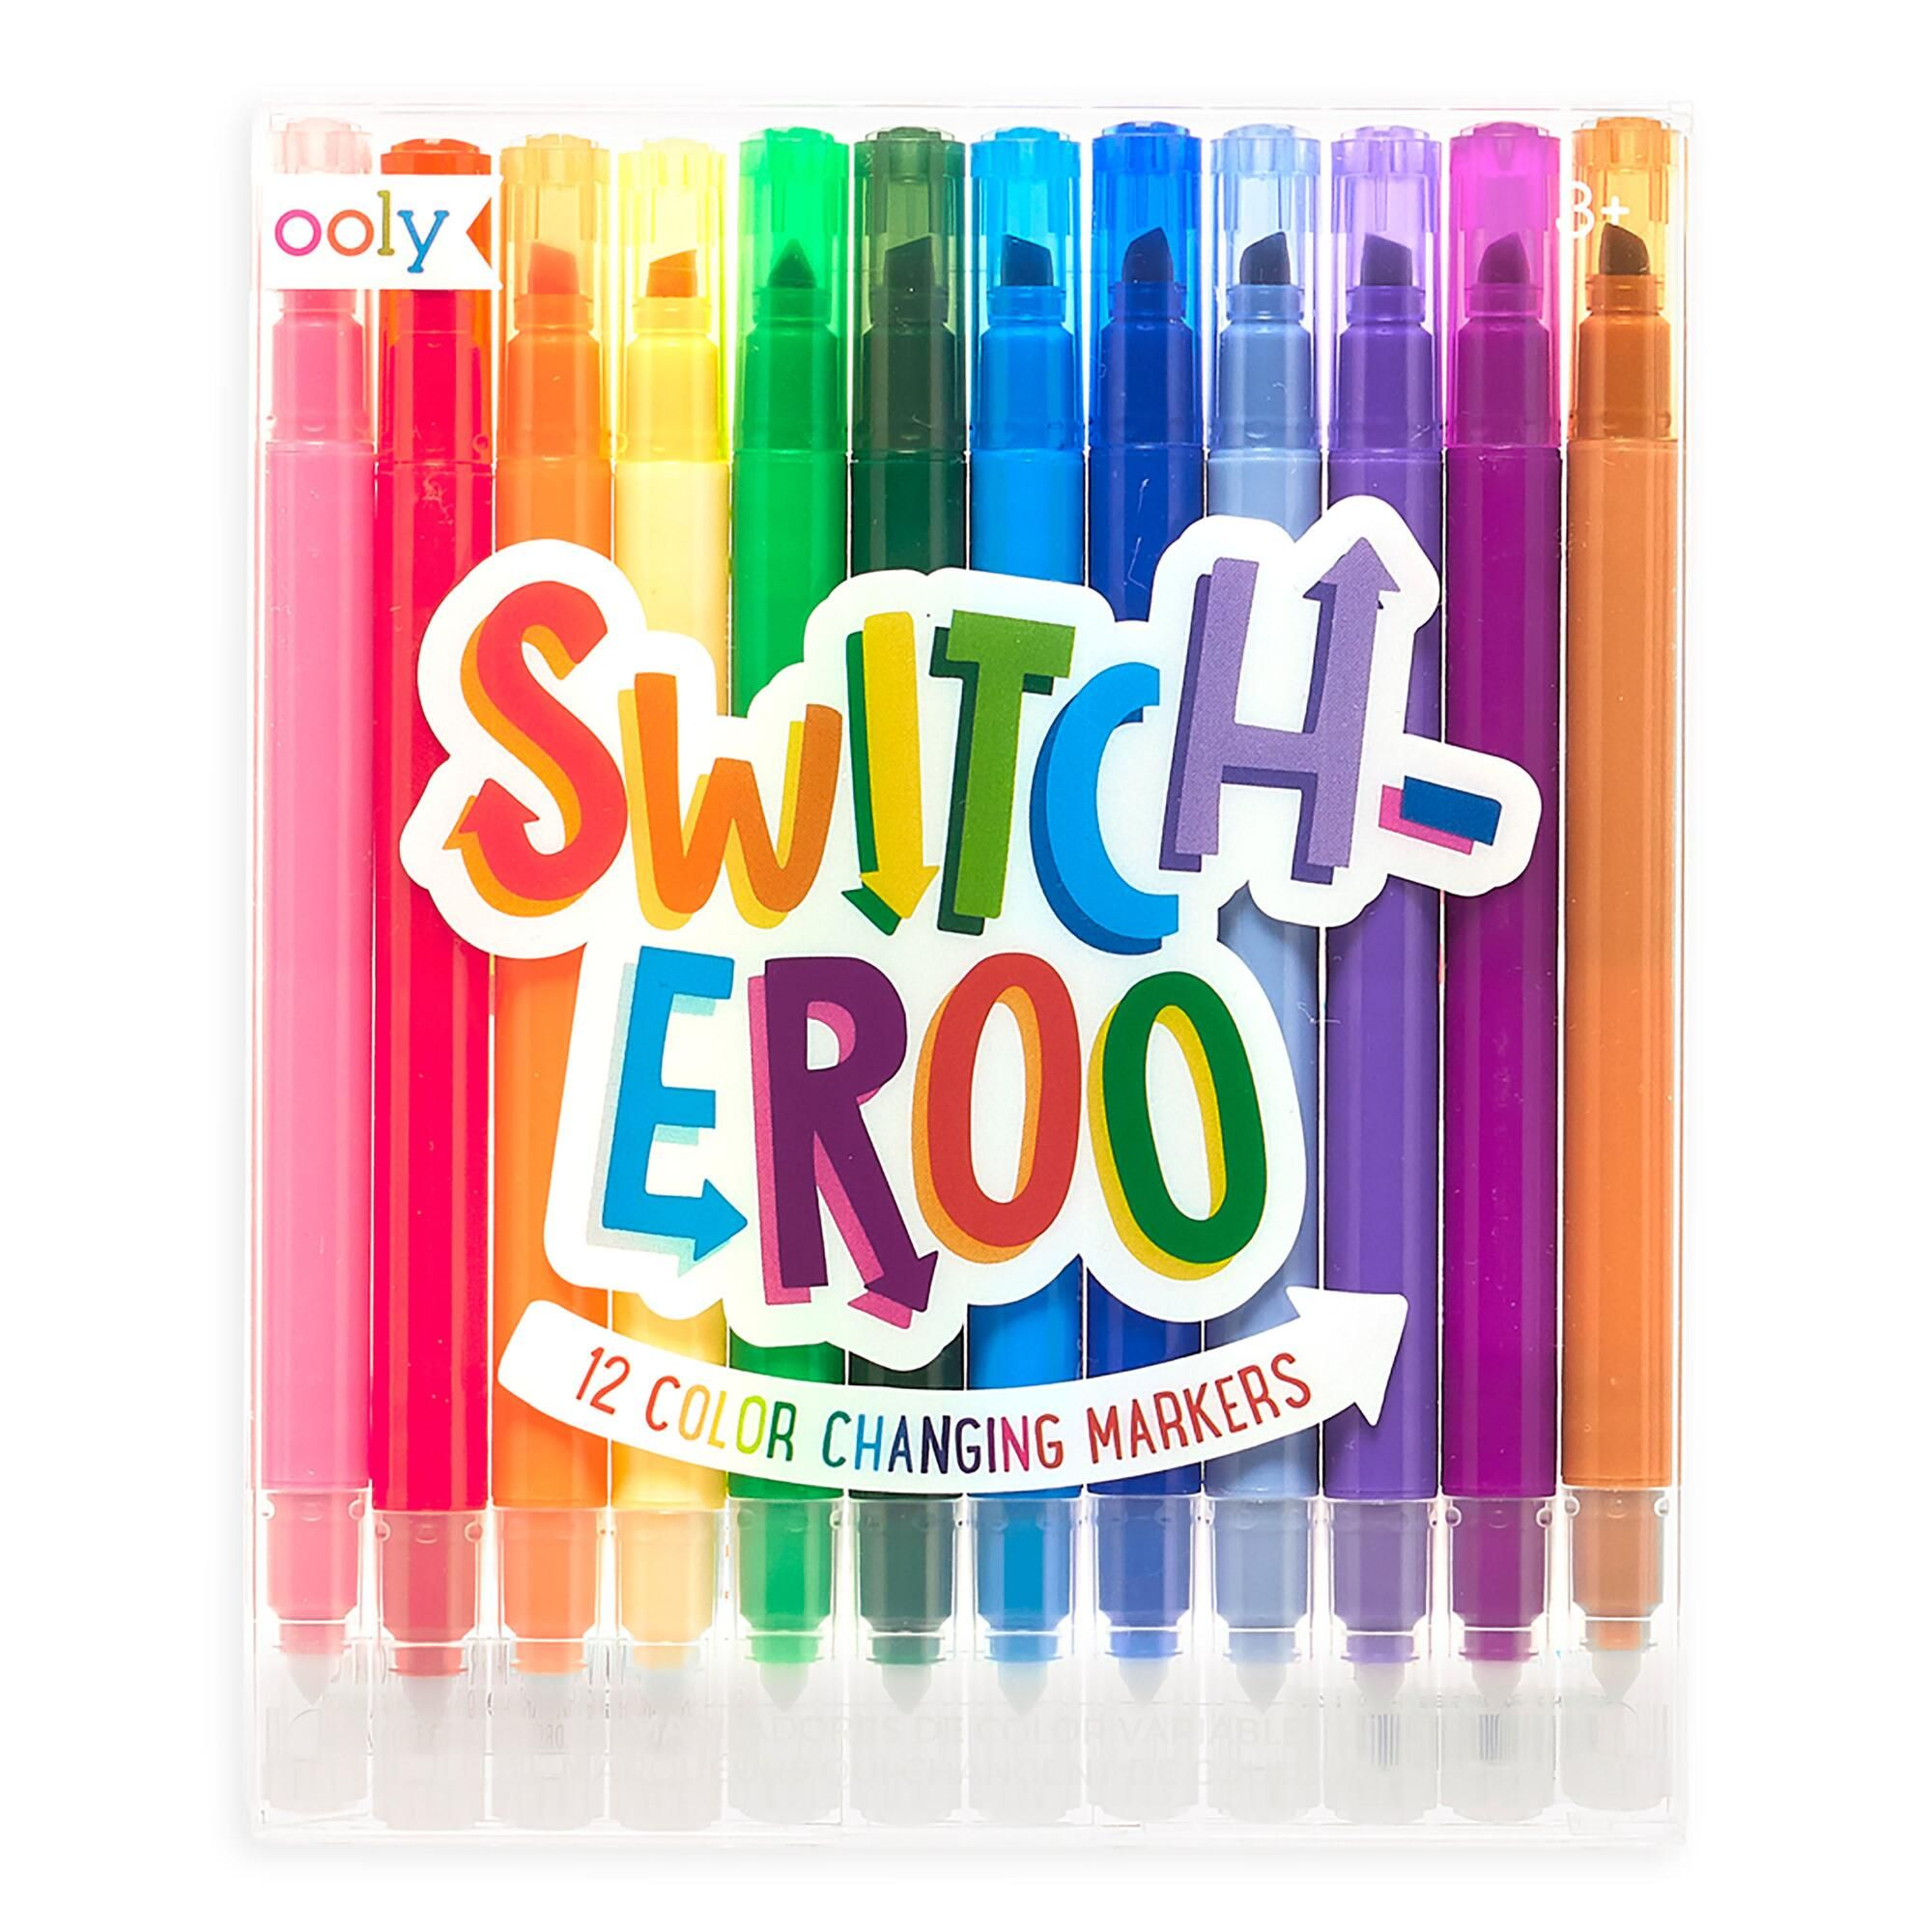 Ooly Switch Eroo Color Changing Markers 12 Pack By World Market In 2020 Markers Set Coloring Markers Markers